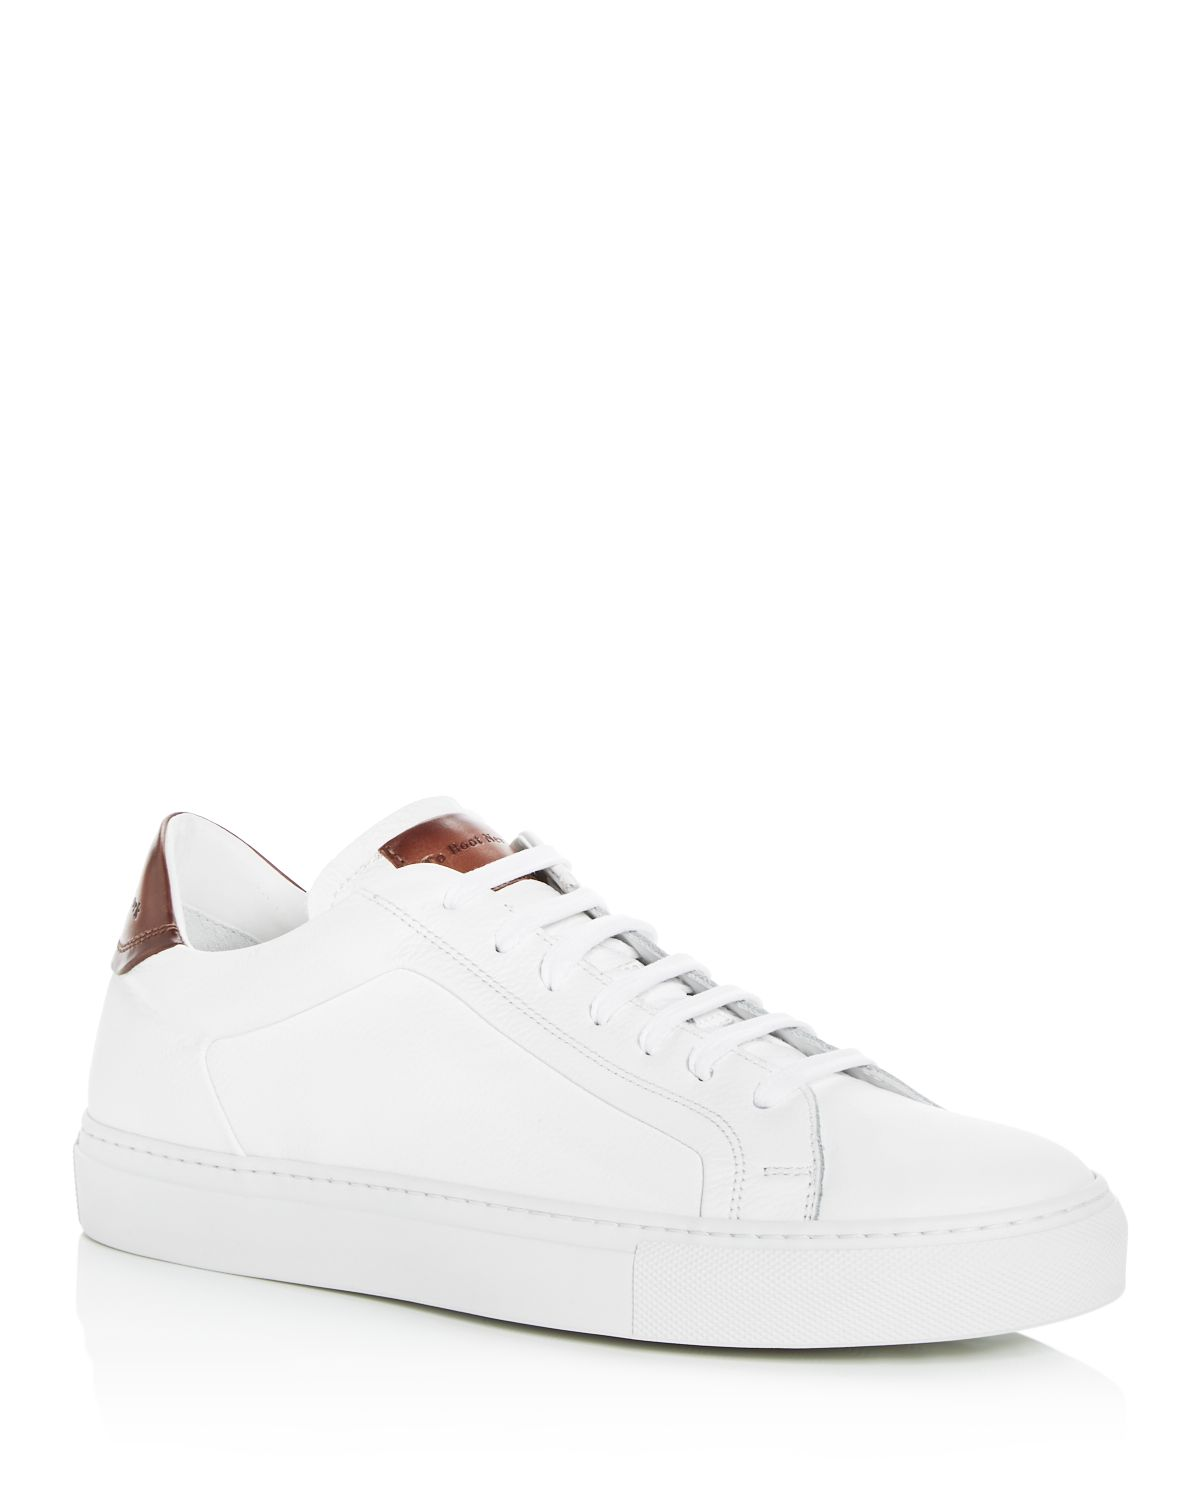 To Boot Men's Carlin Sneaker